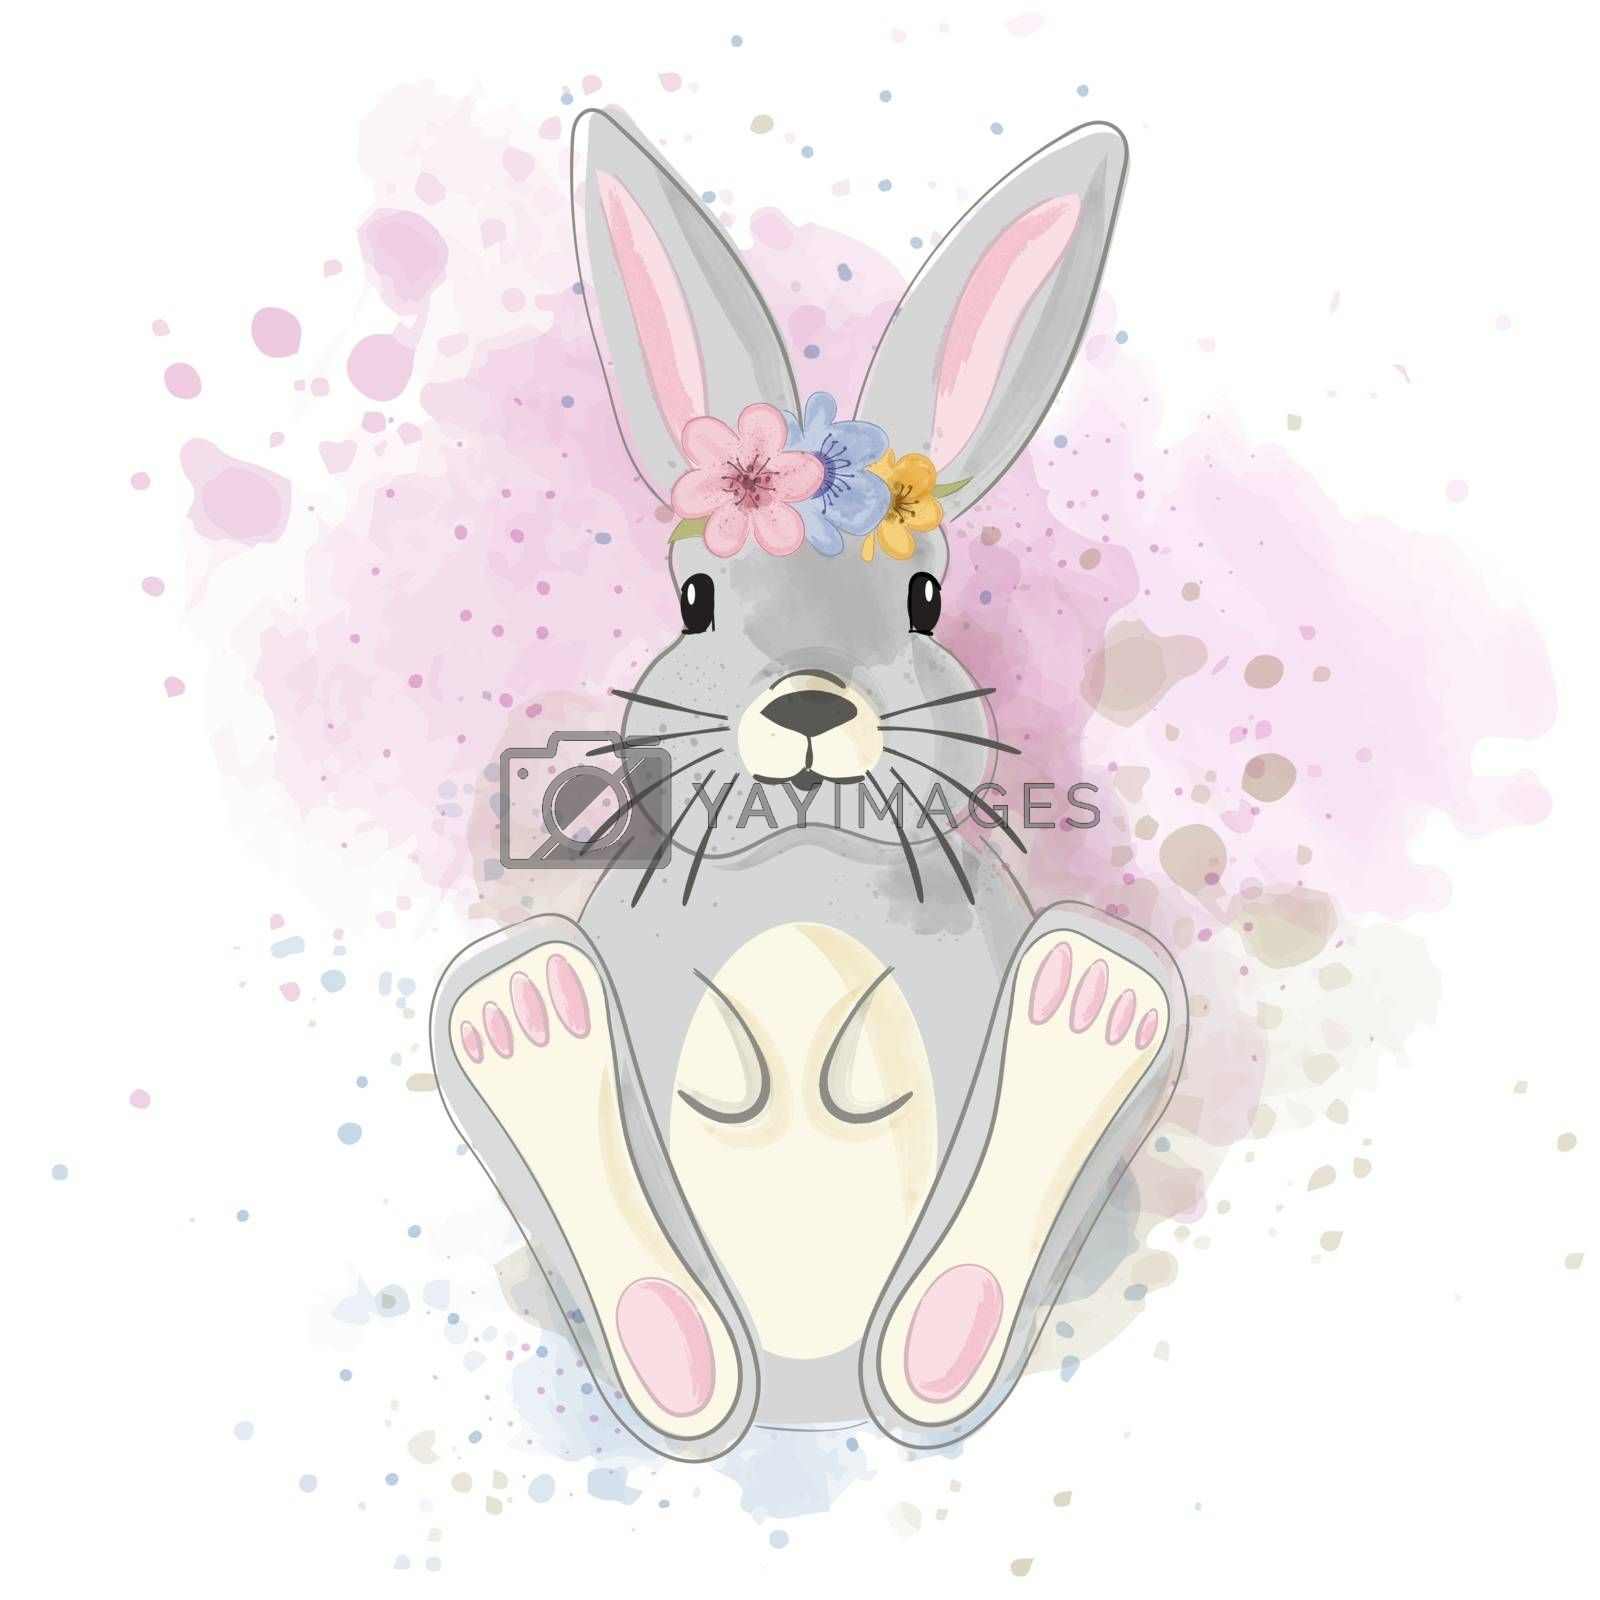 Cute watercolor bunny with crown of flowers on the head